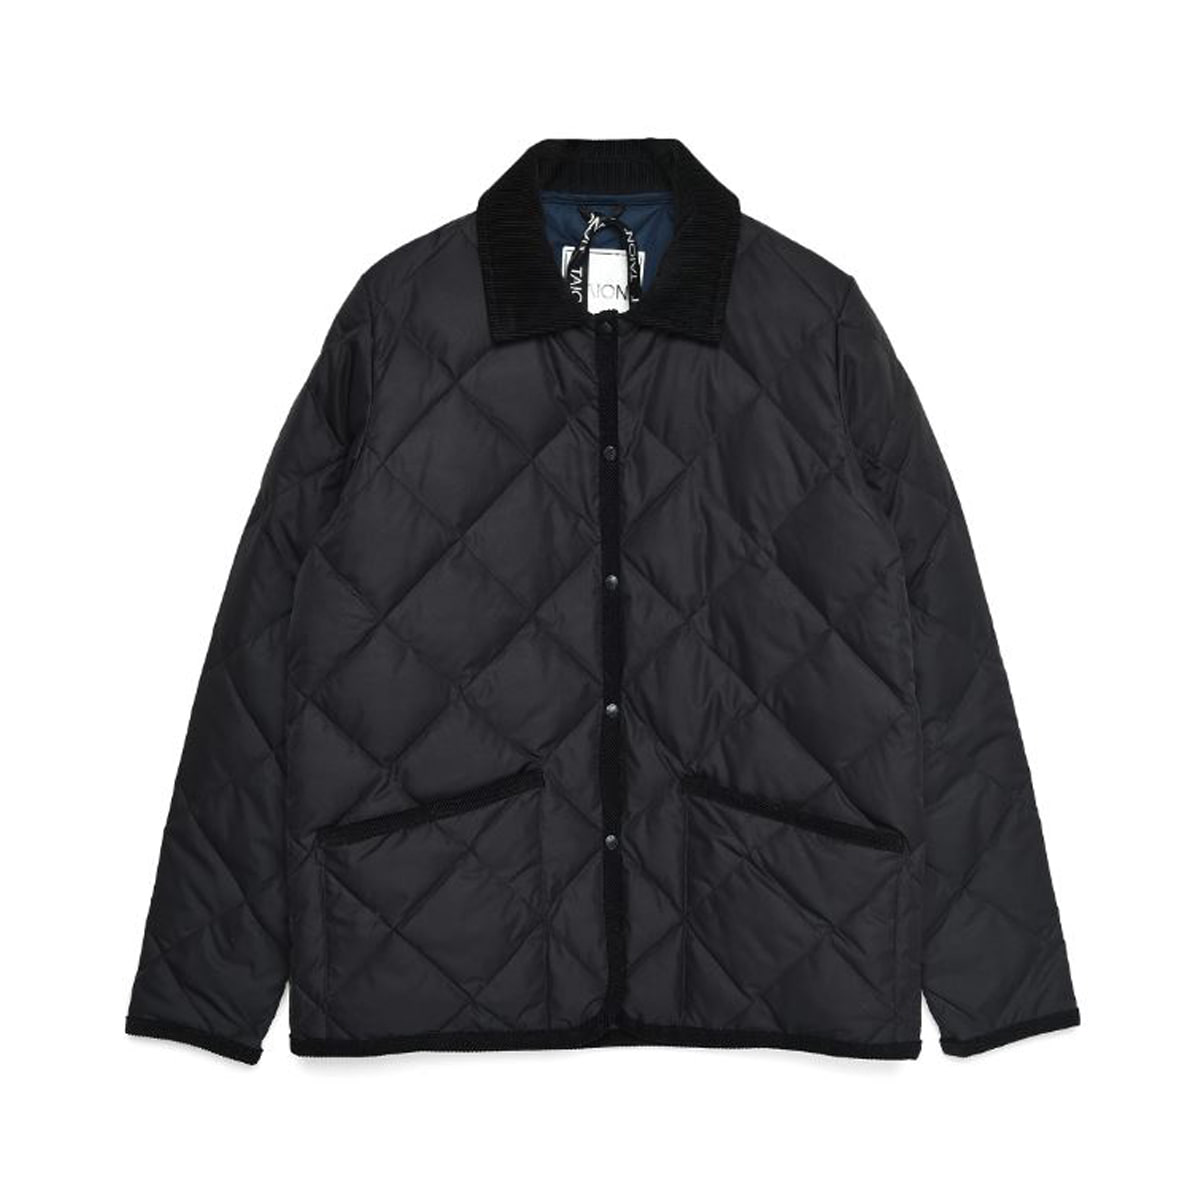 [TAION] PIPING COLLARED DOWN JACKET (TAION-109CI) 'BLACK'